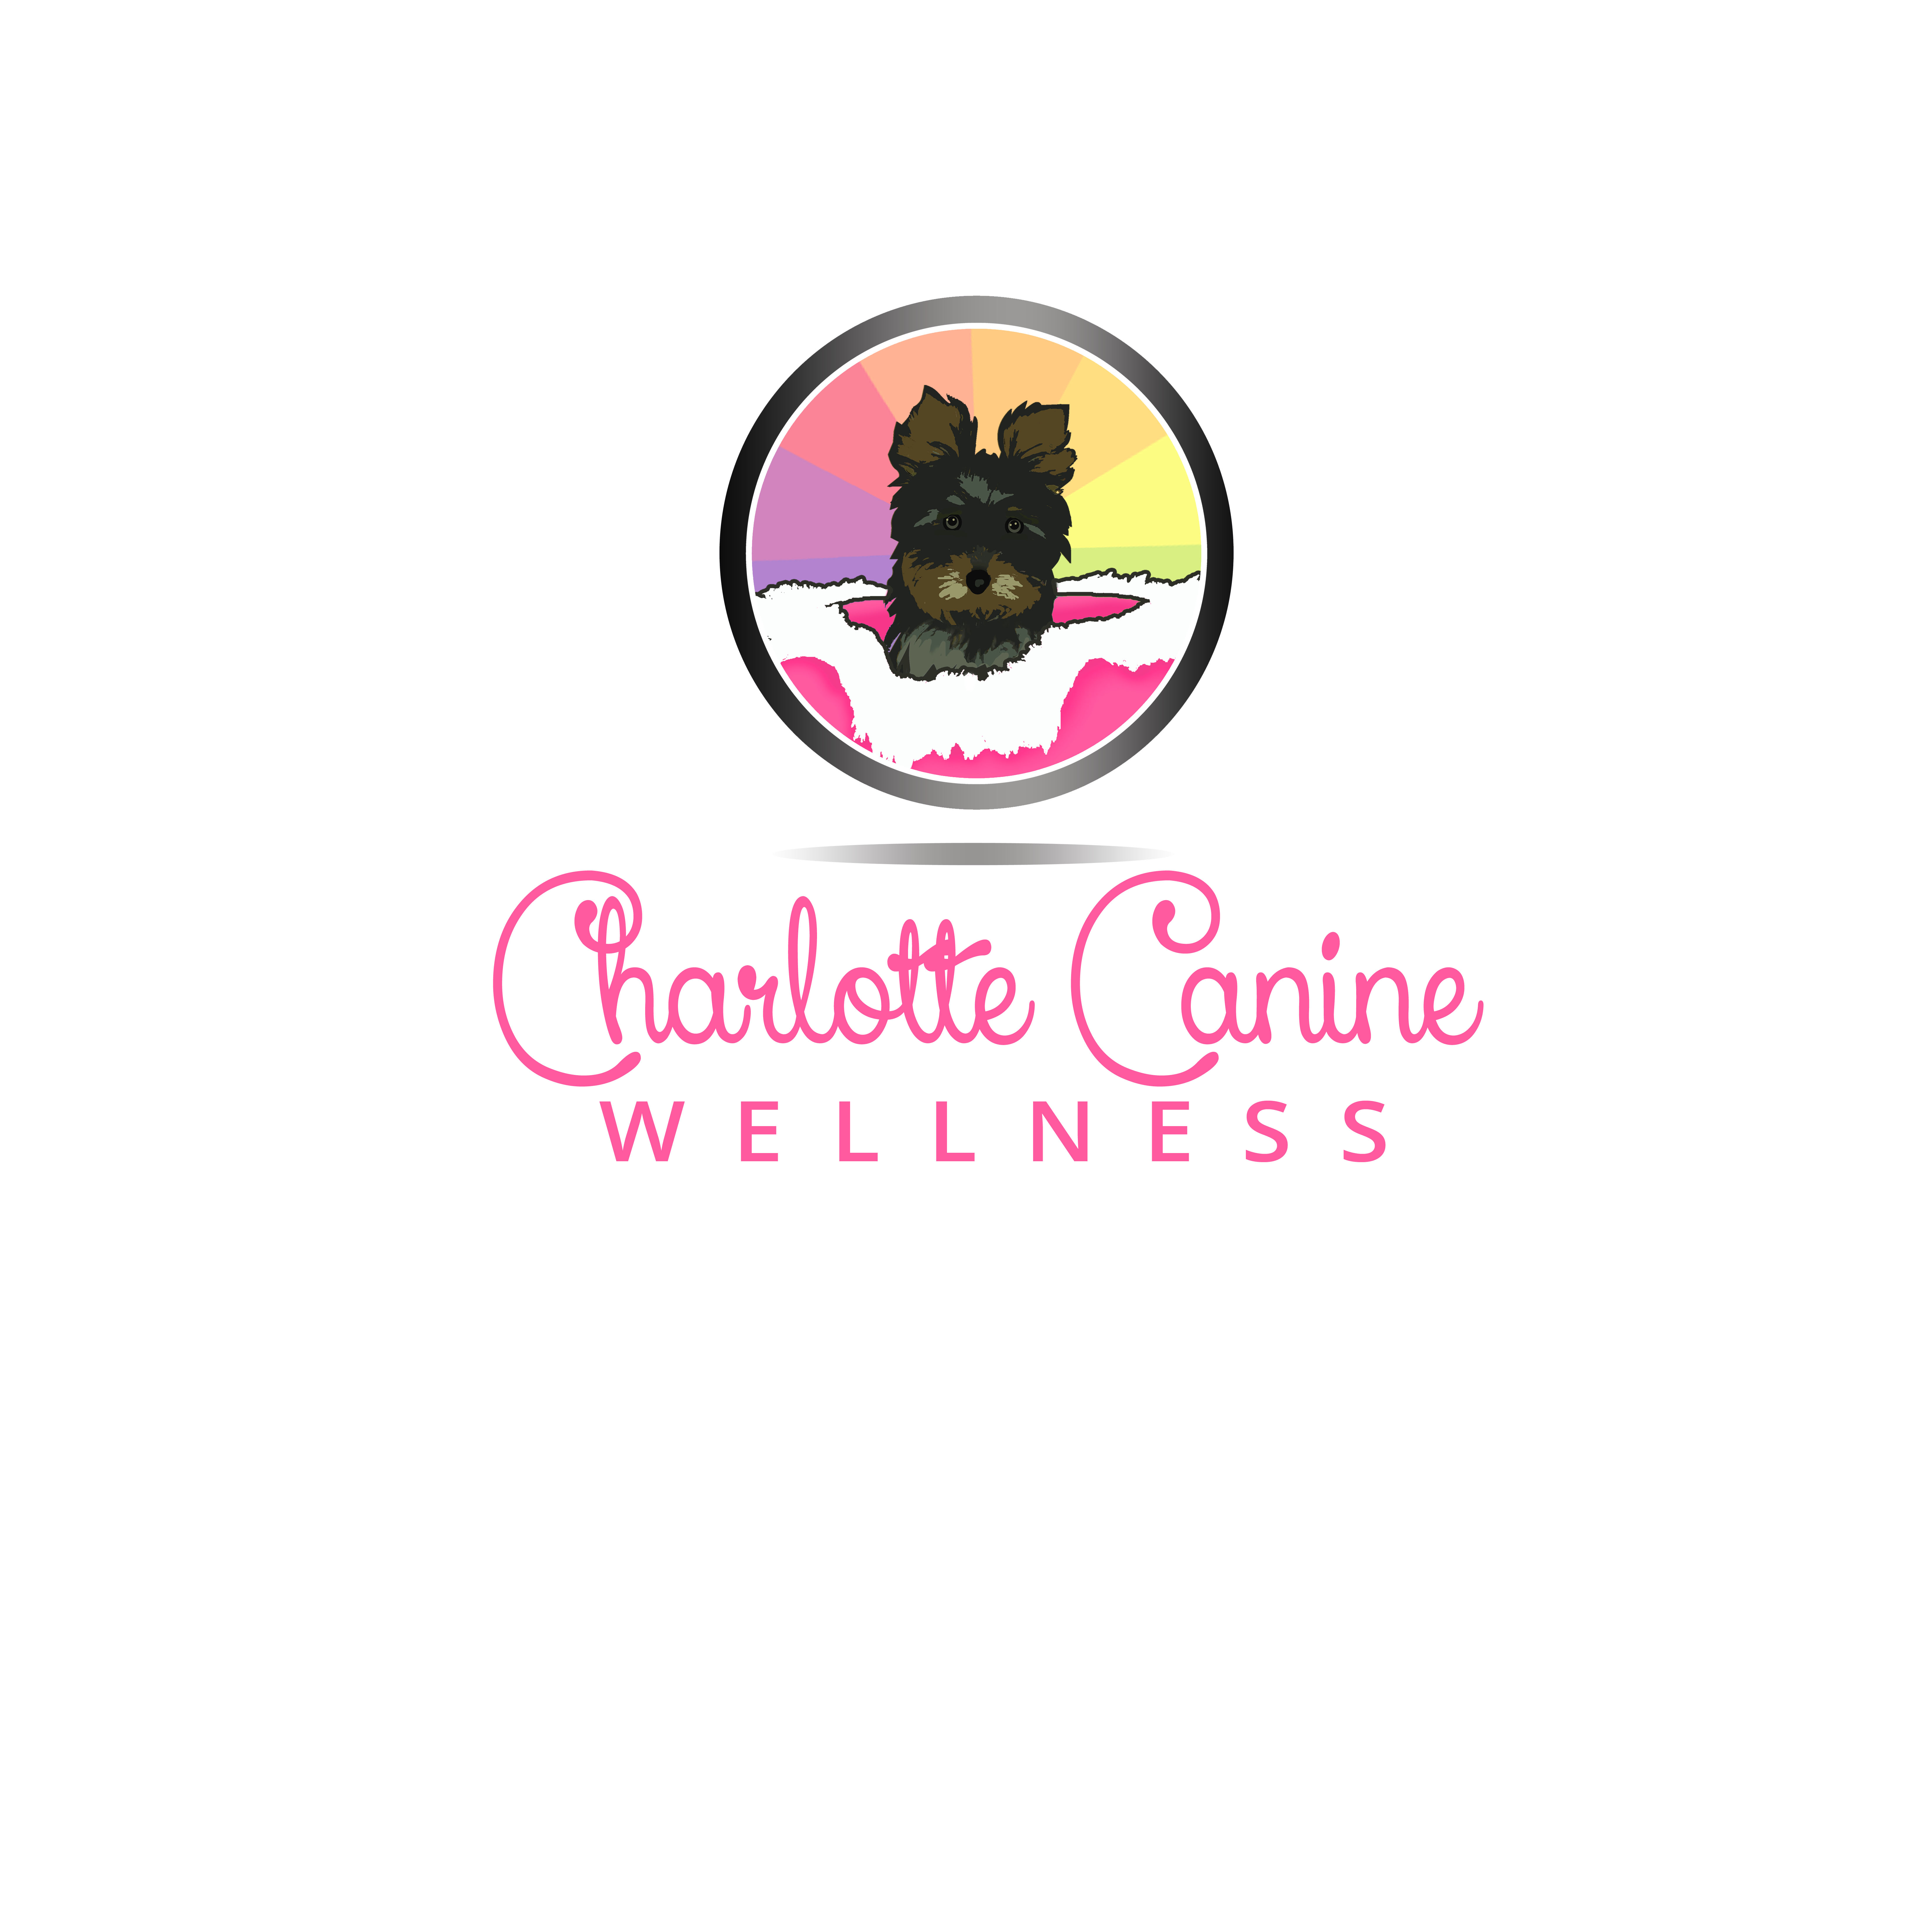 Logo Design by Allan Esclamado - Entry No. 93 in the Logo Design Contest New Logo Design for Charlotte Canine Wellness.